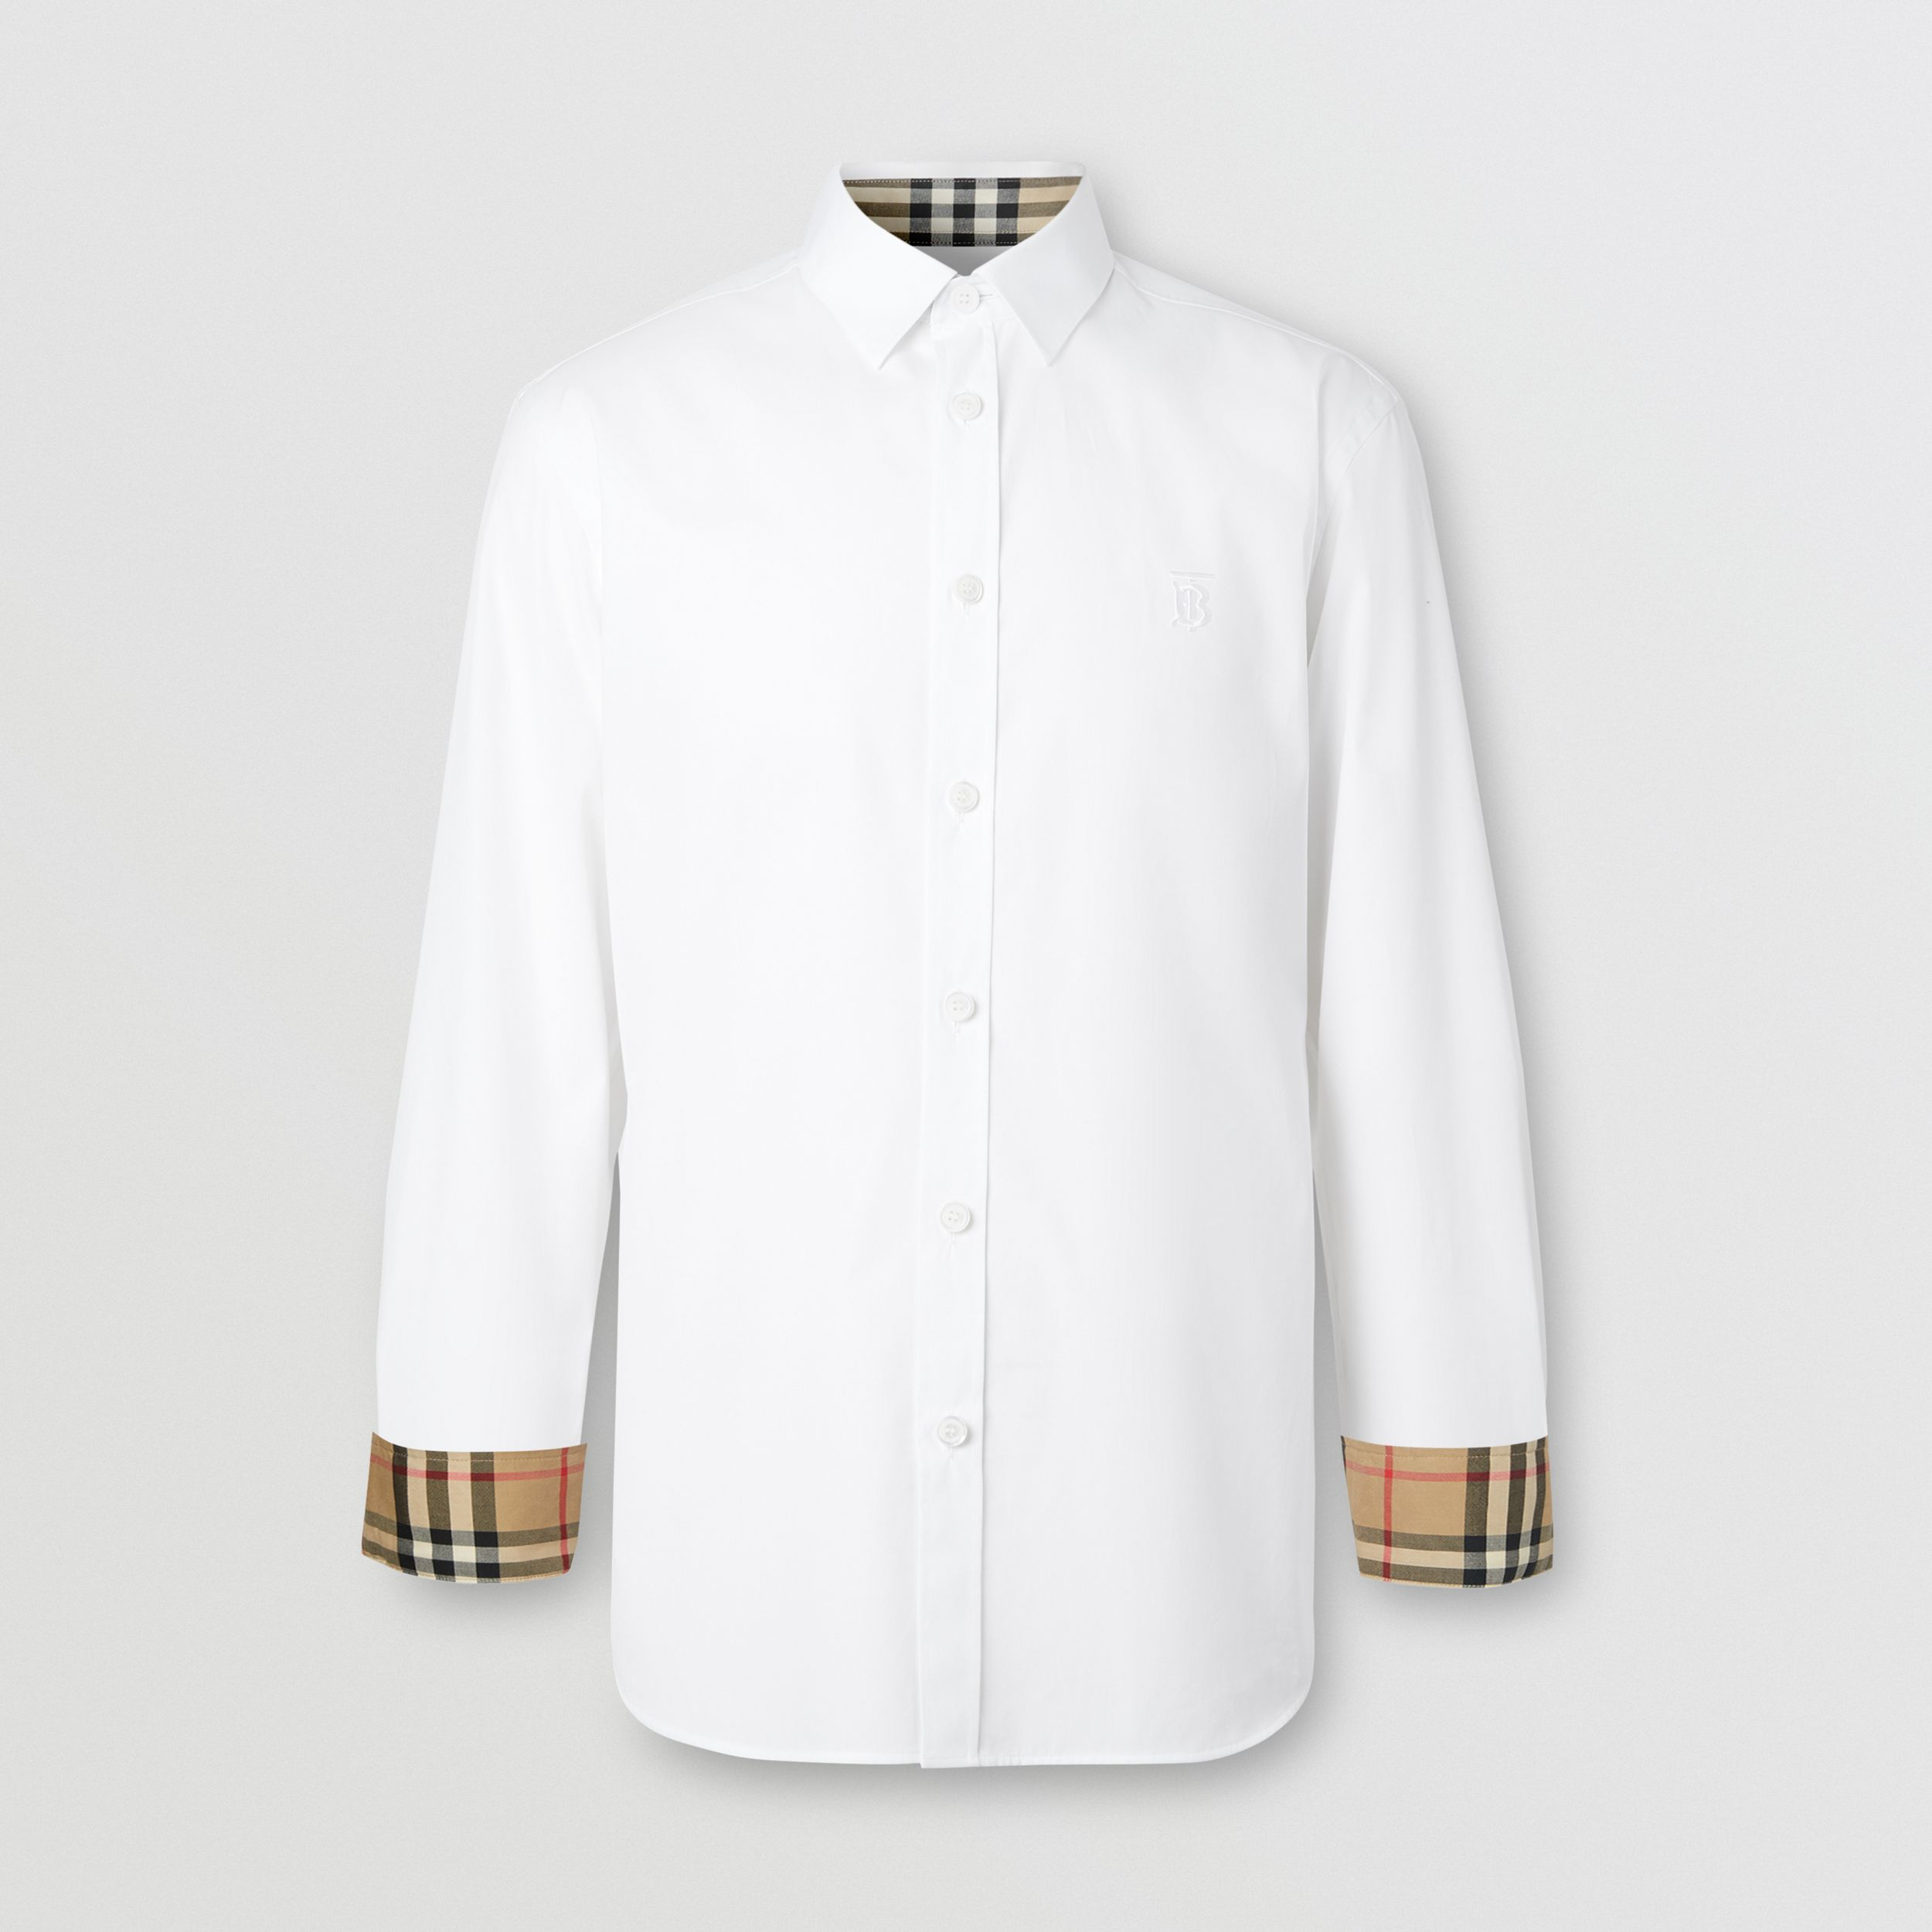 Slim Fit Monogram Motif Stretch Cotton Poplin Shirt in White - Men | Burberry - 4